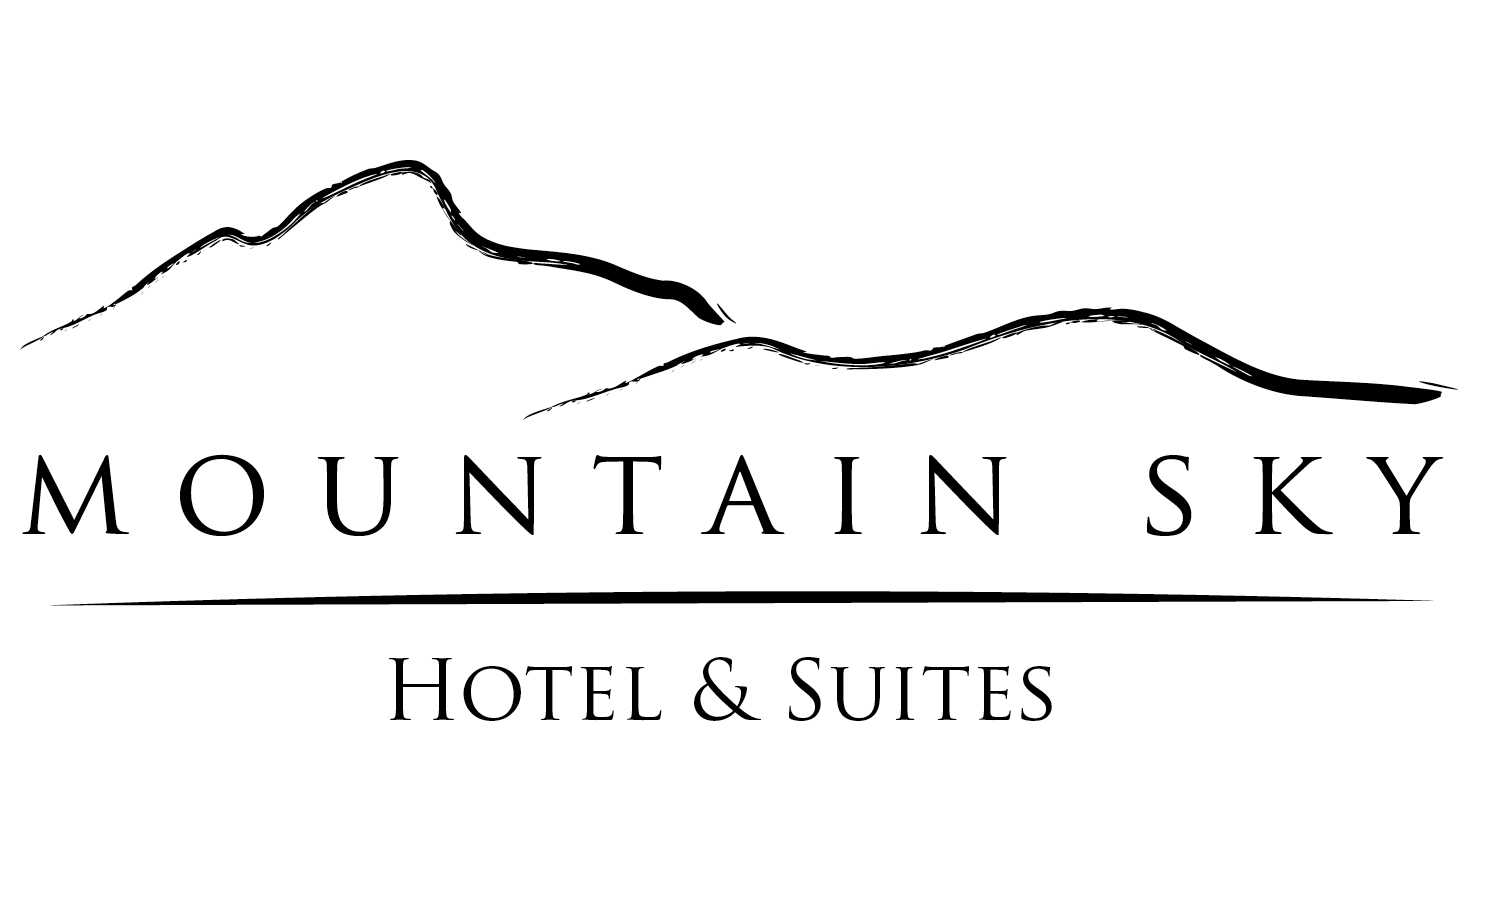 Mountain Sky Hotel & Suites